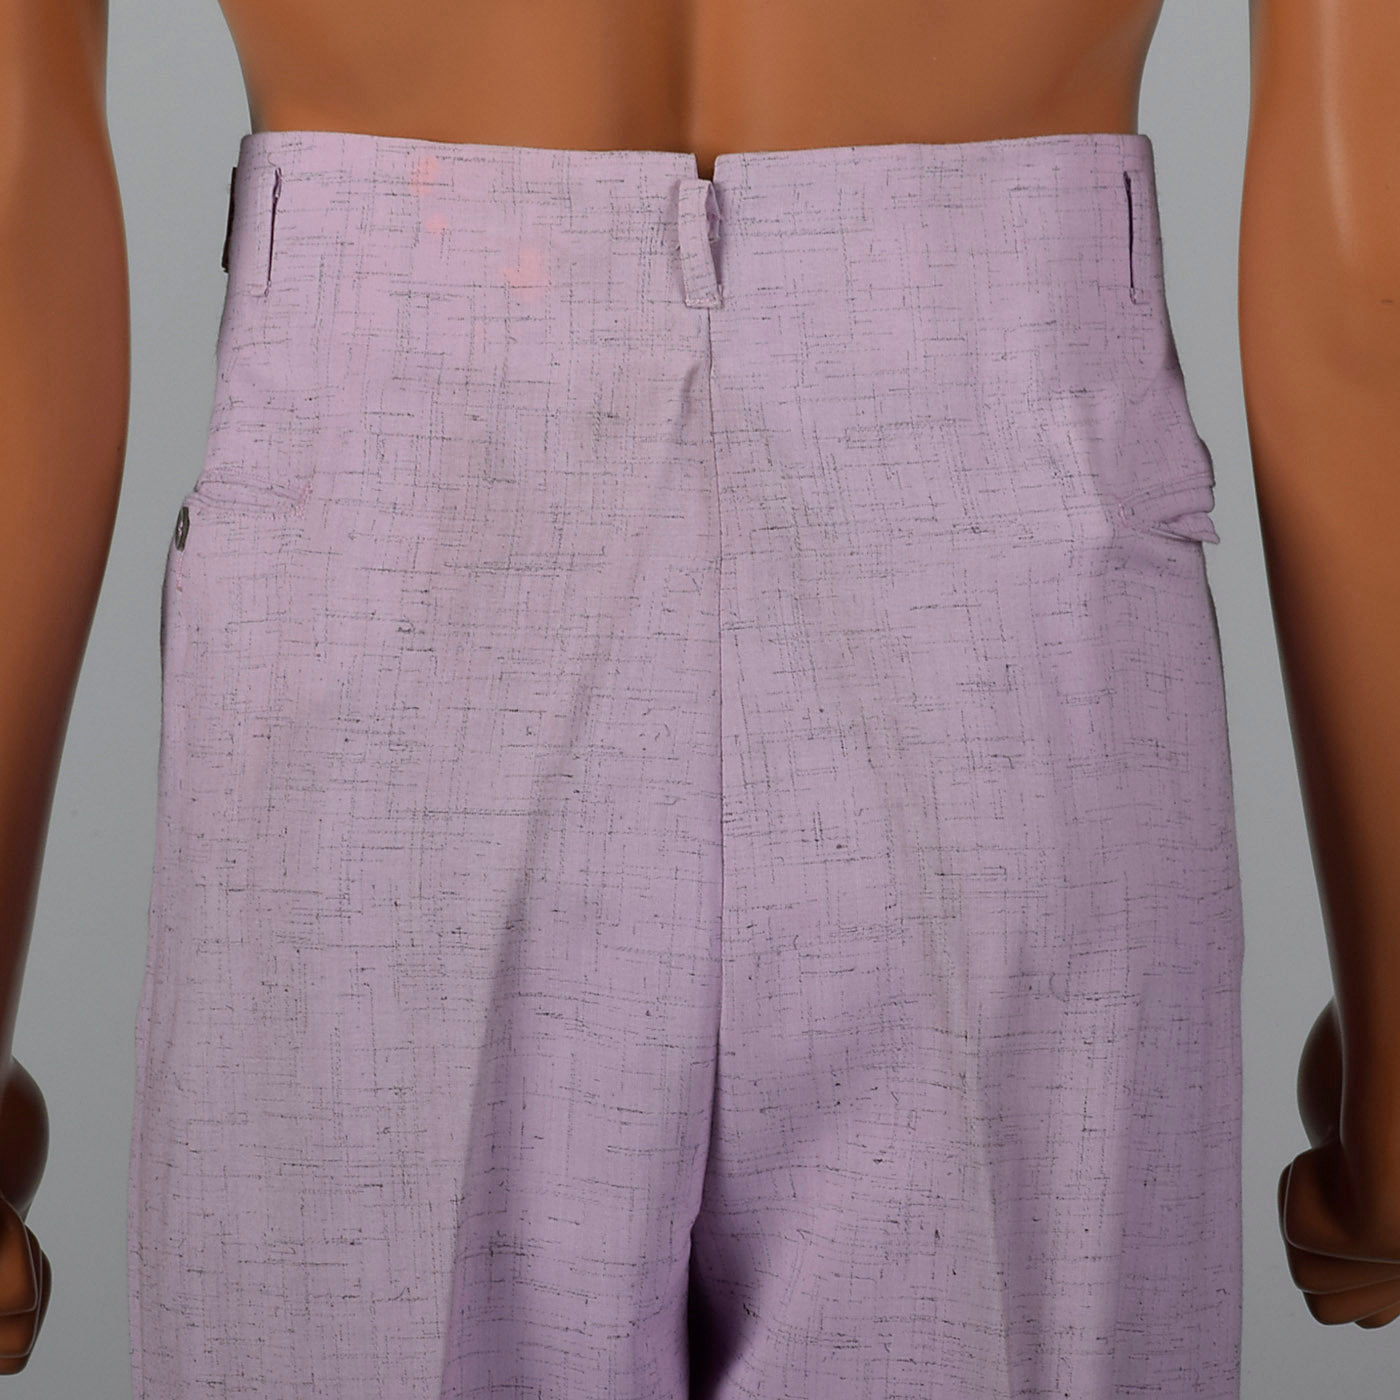 1950s Mens Hollywood Waist Pants Lavender Rayon with Gray Flecks